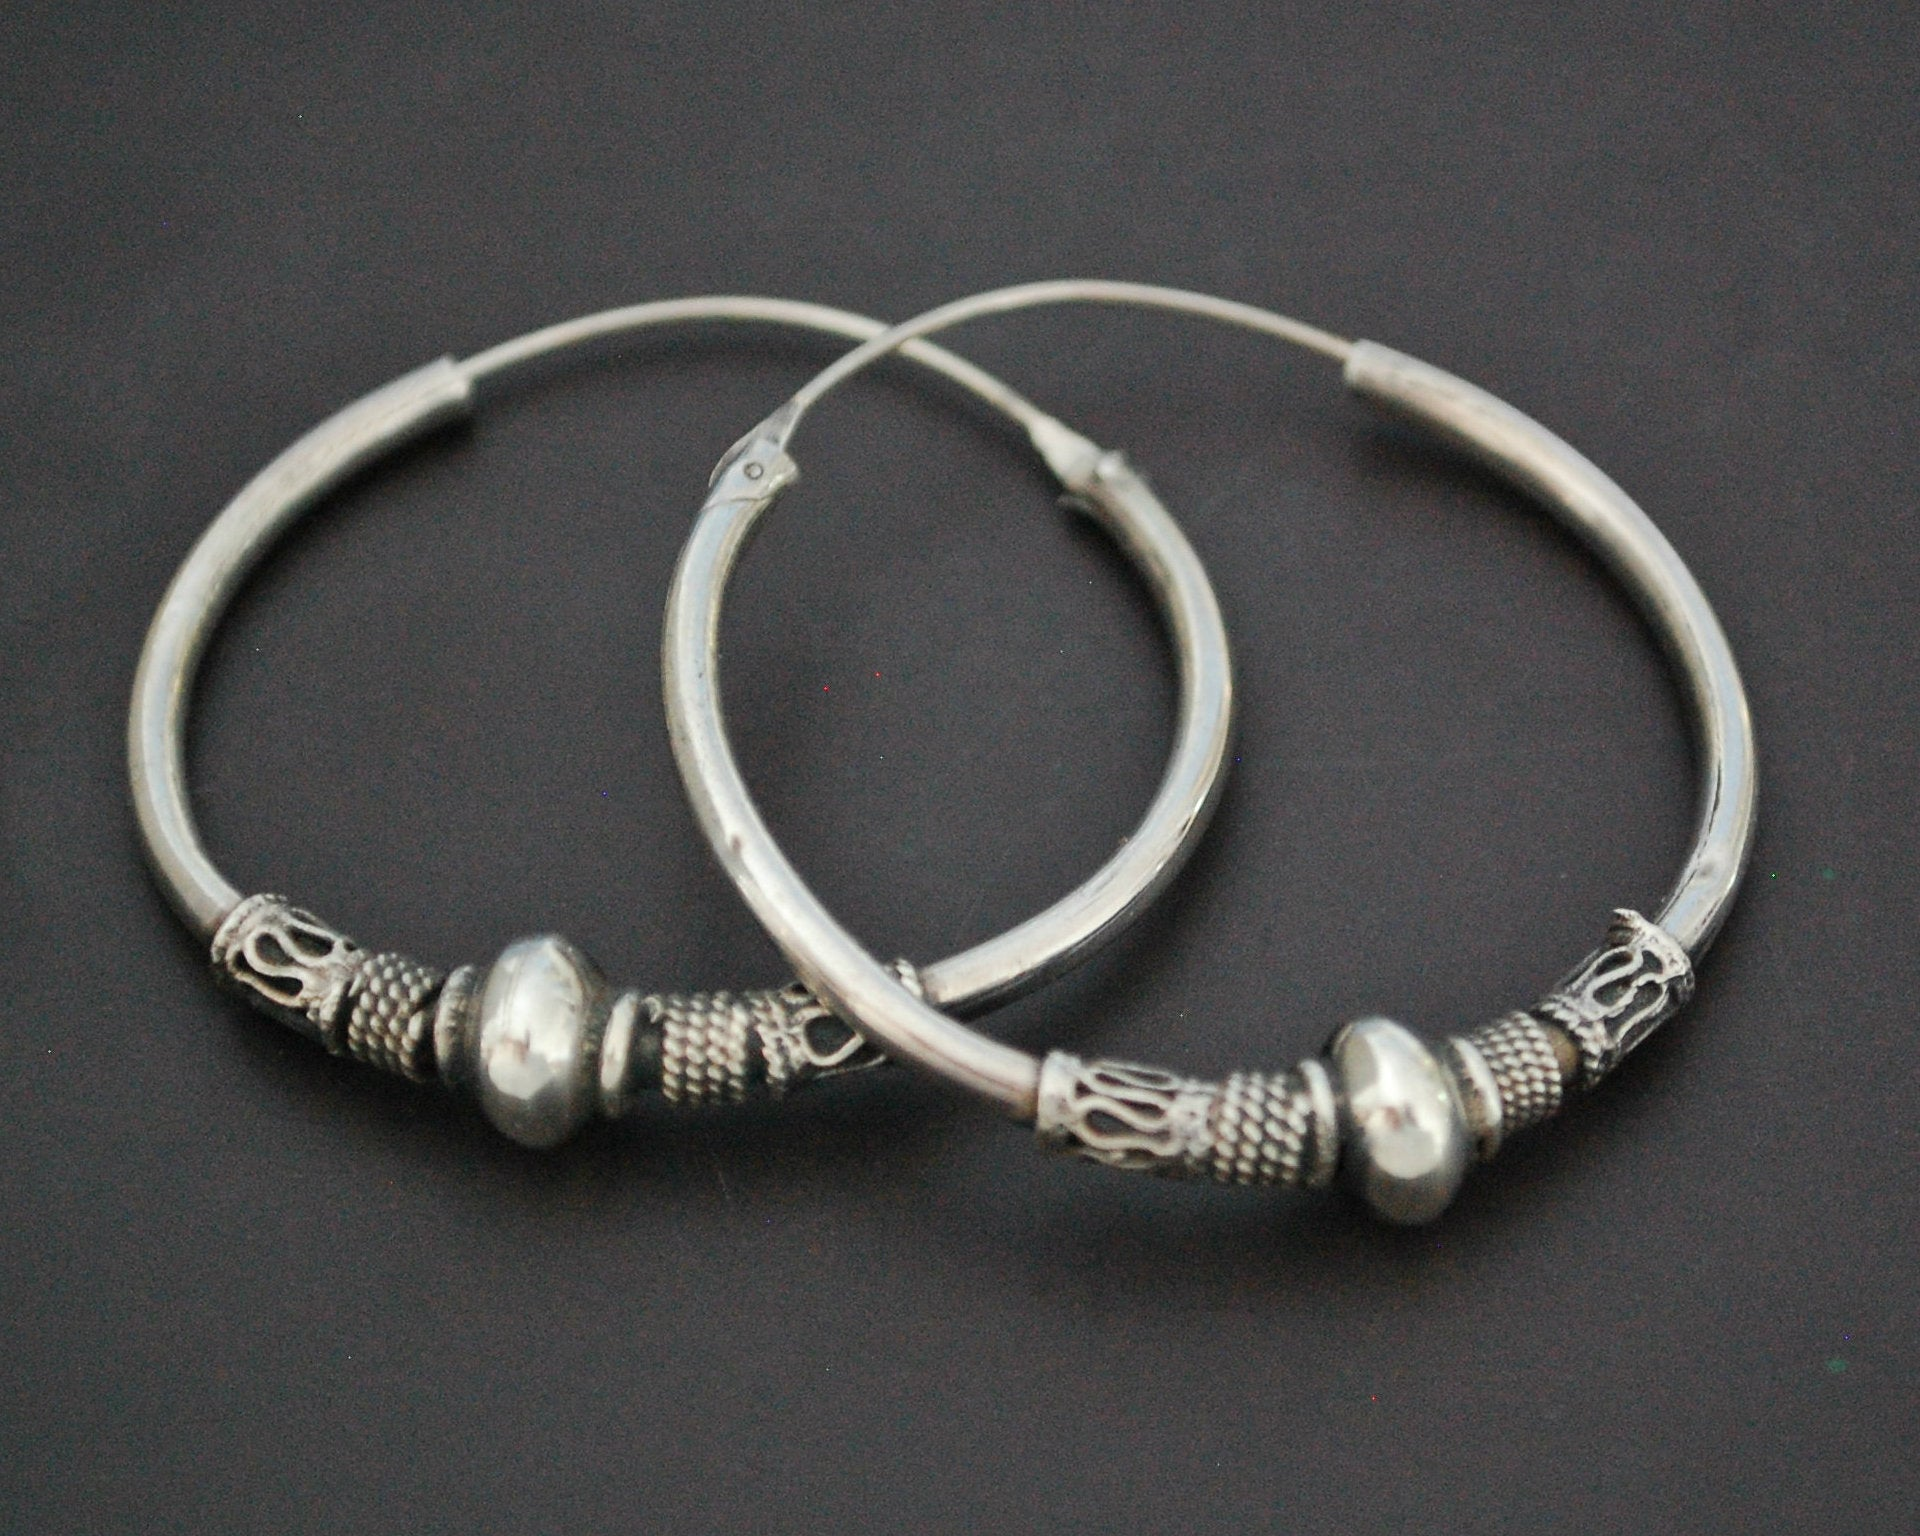 Bali Hoop Earrings - LARGE